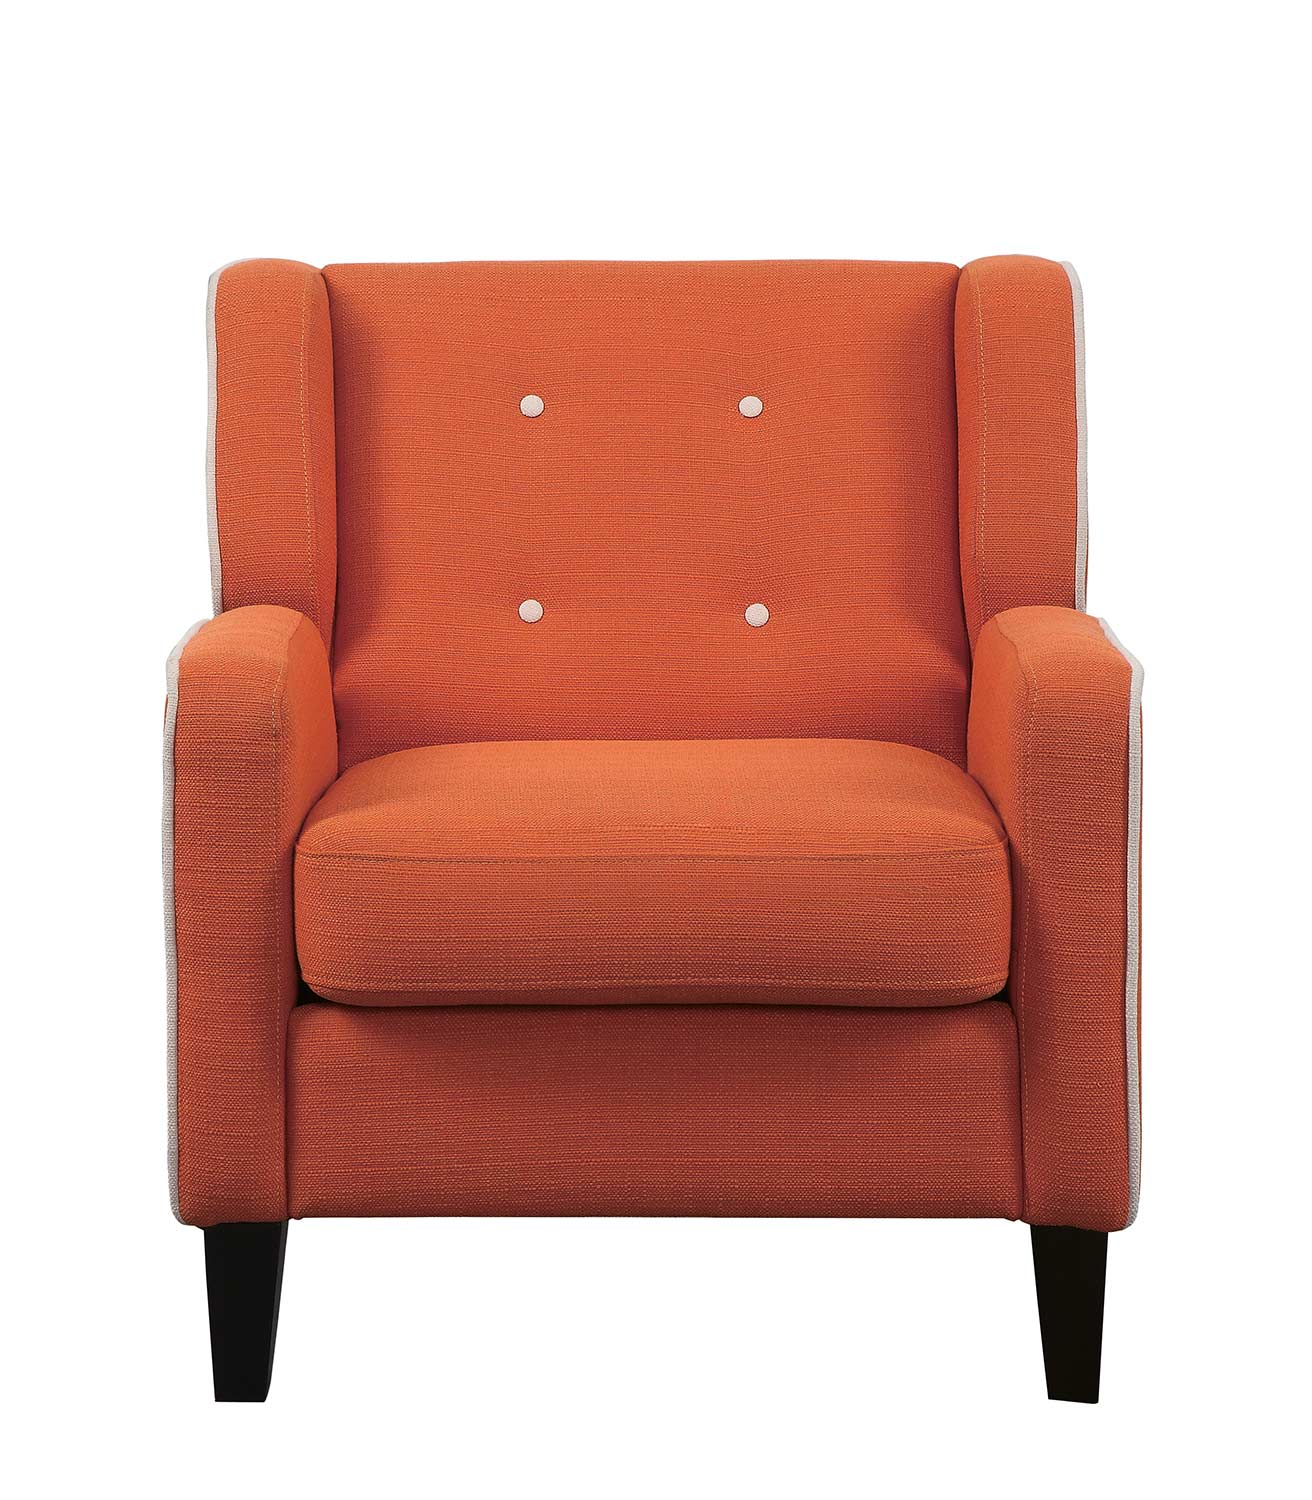 Homelegance Roweena Accent Chair - Orange